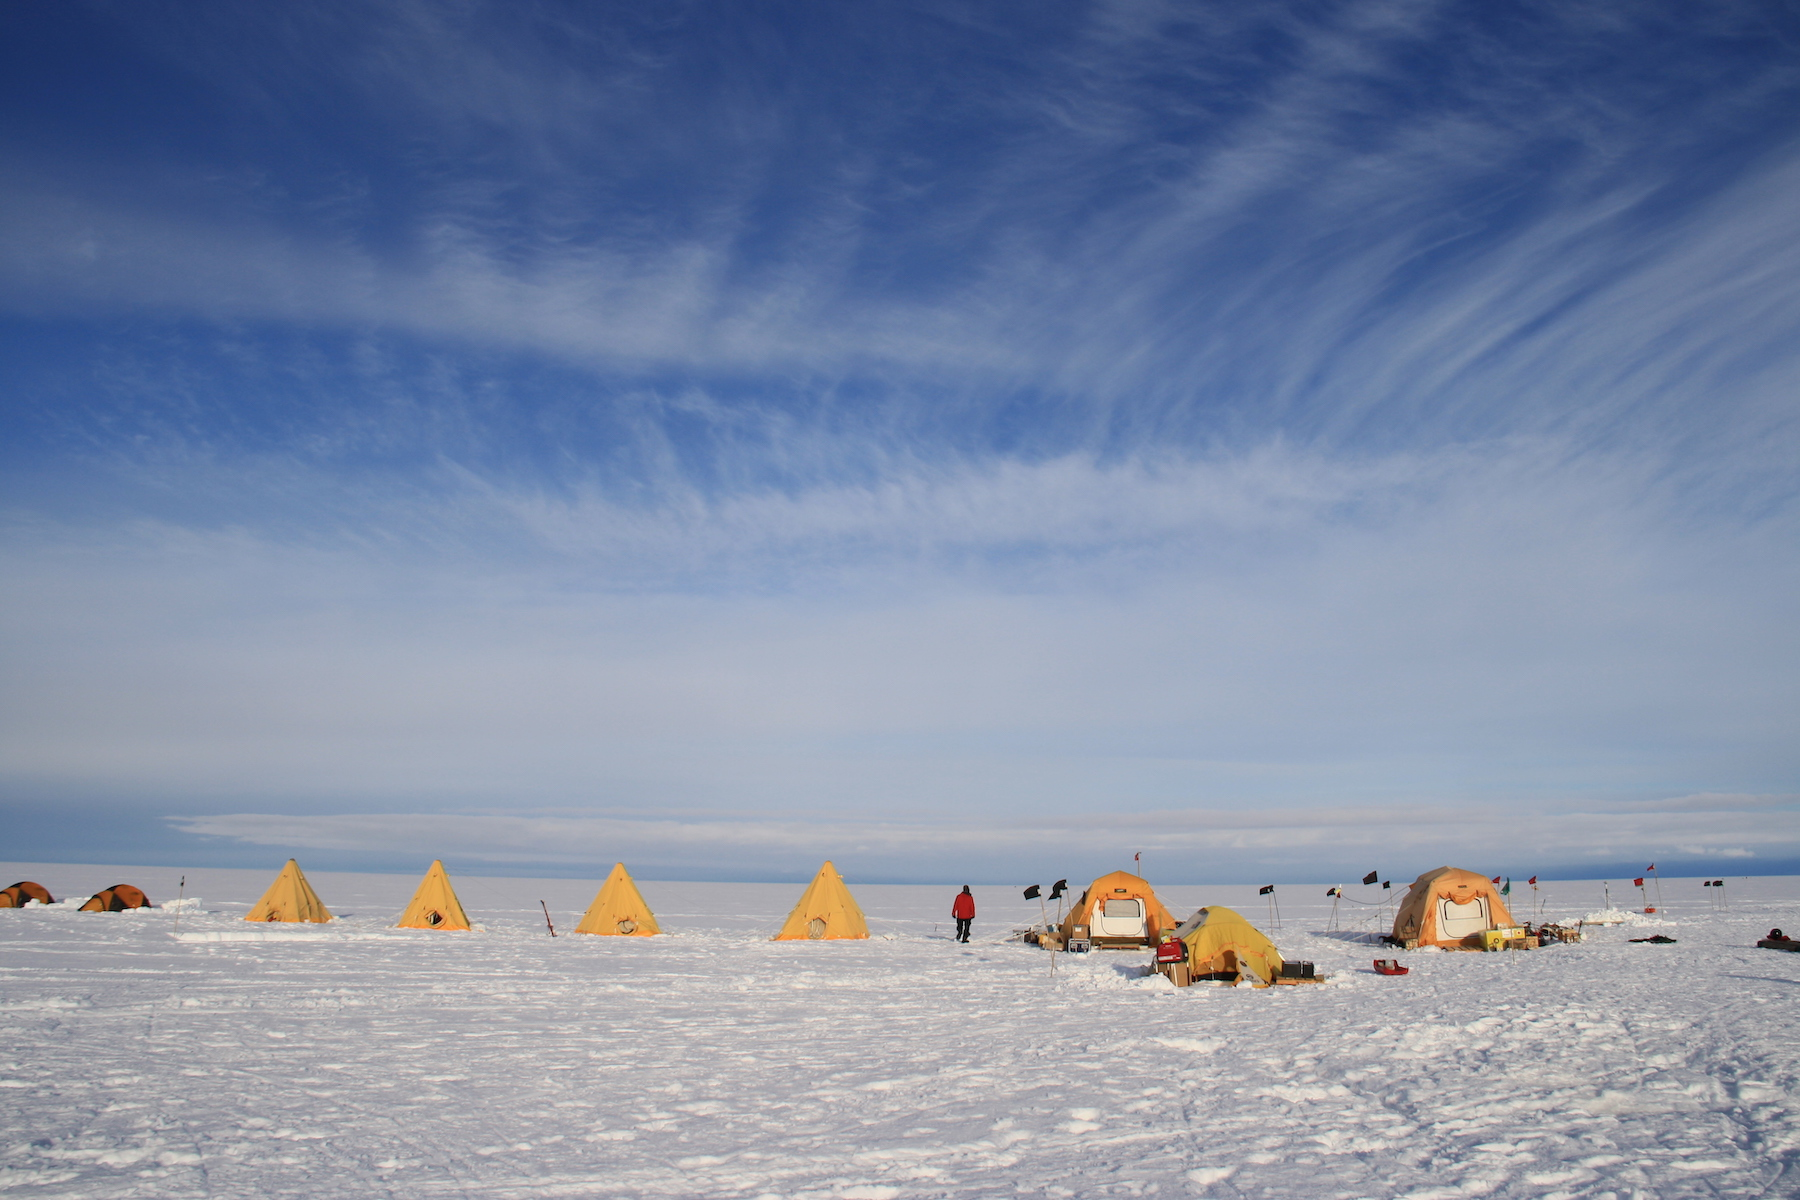 Cavity Camp on Thwaites Glacier. Photo credit: Ted Scambos